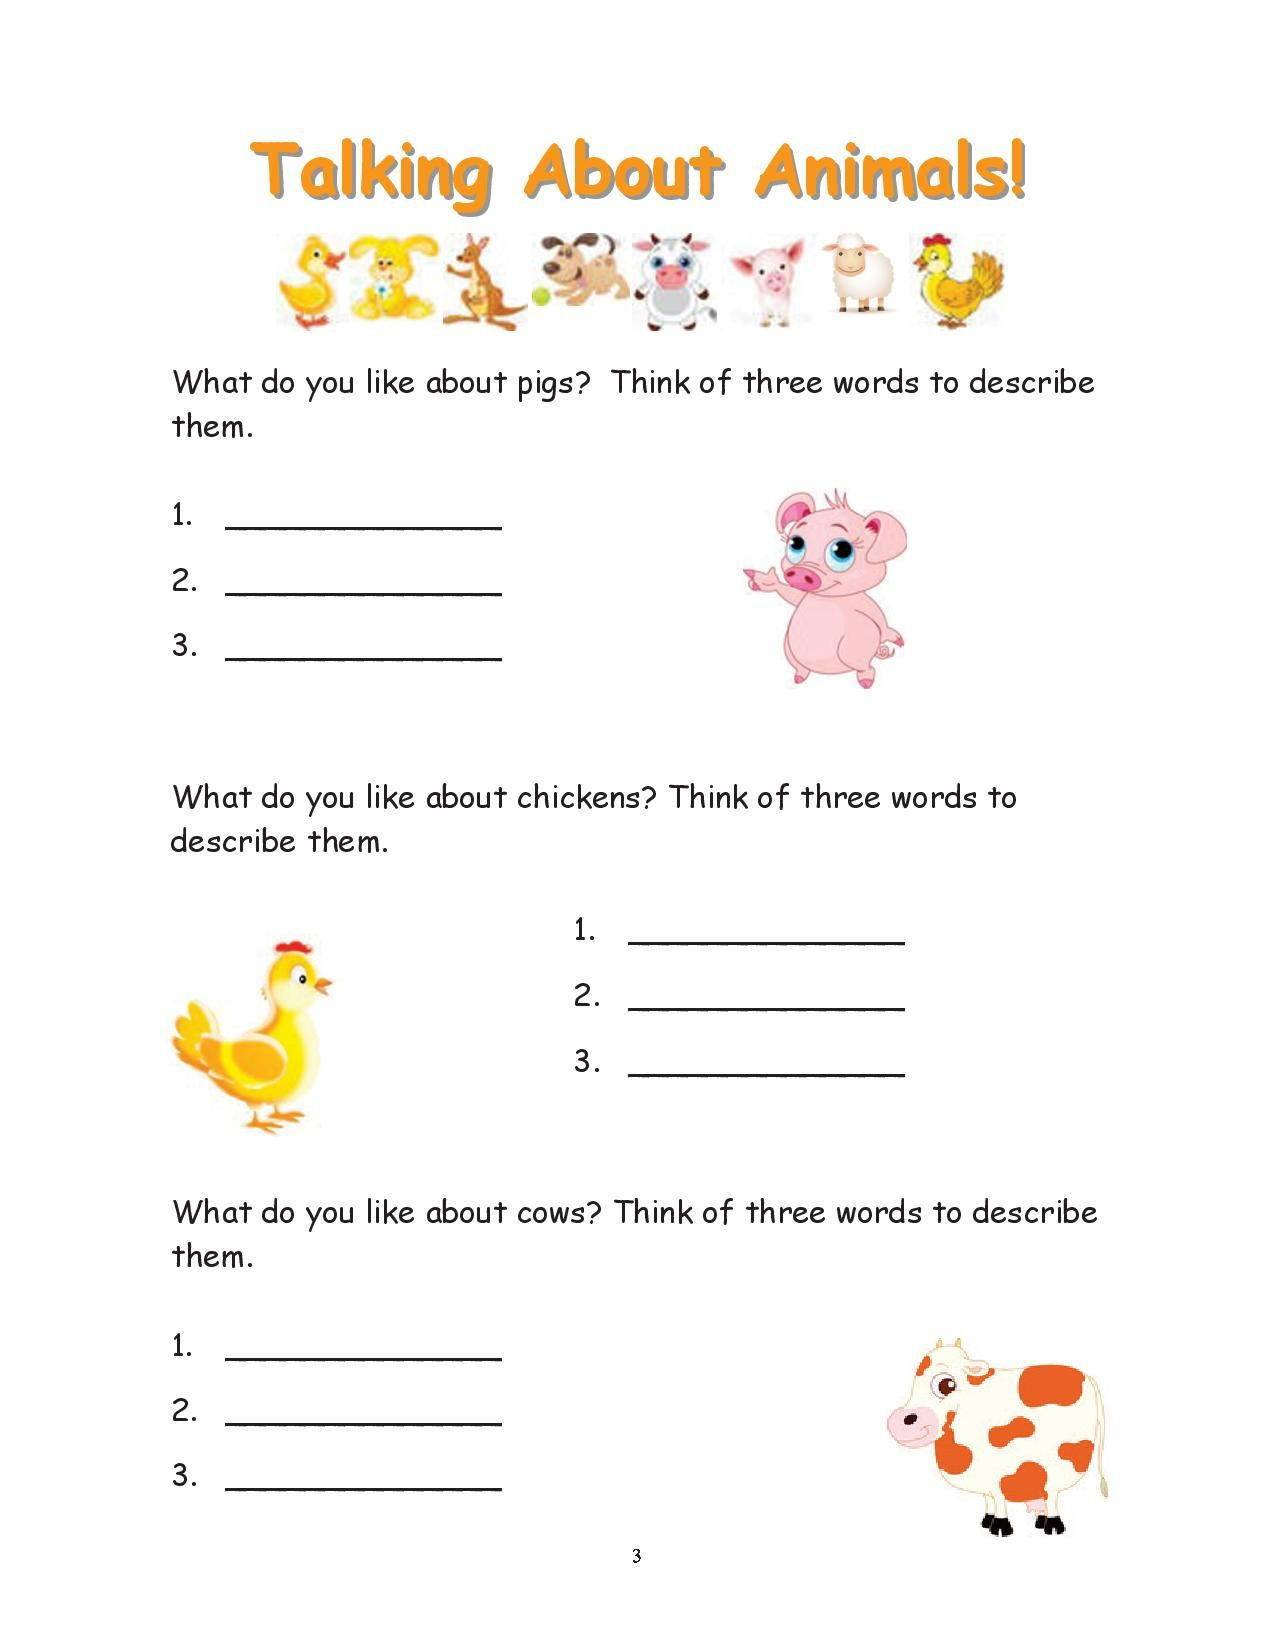 This Worksheet Encourages Students To Describe Three